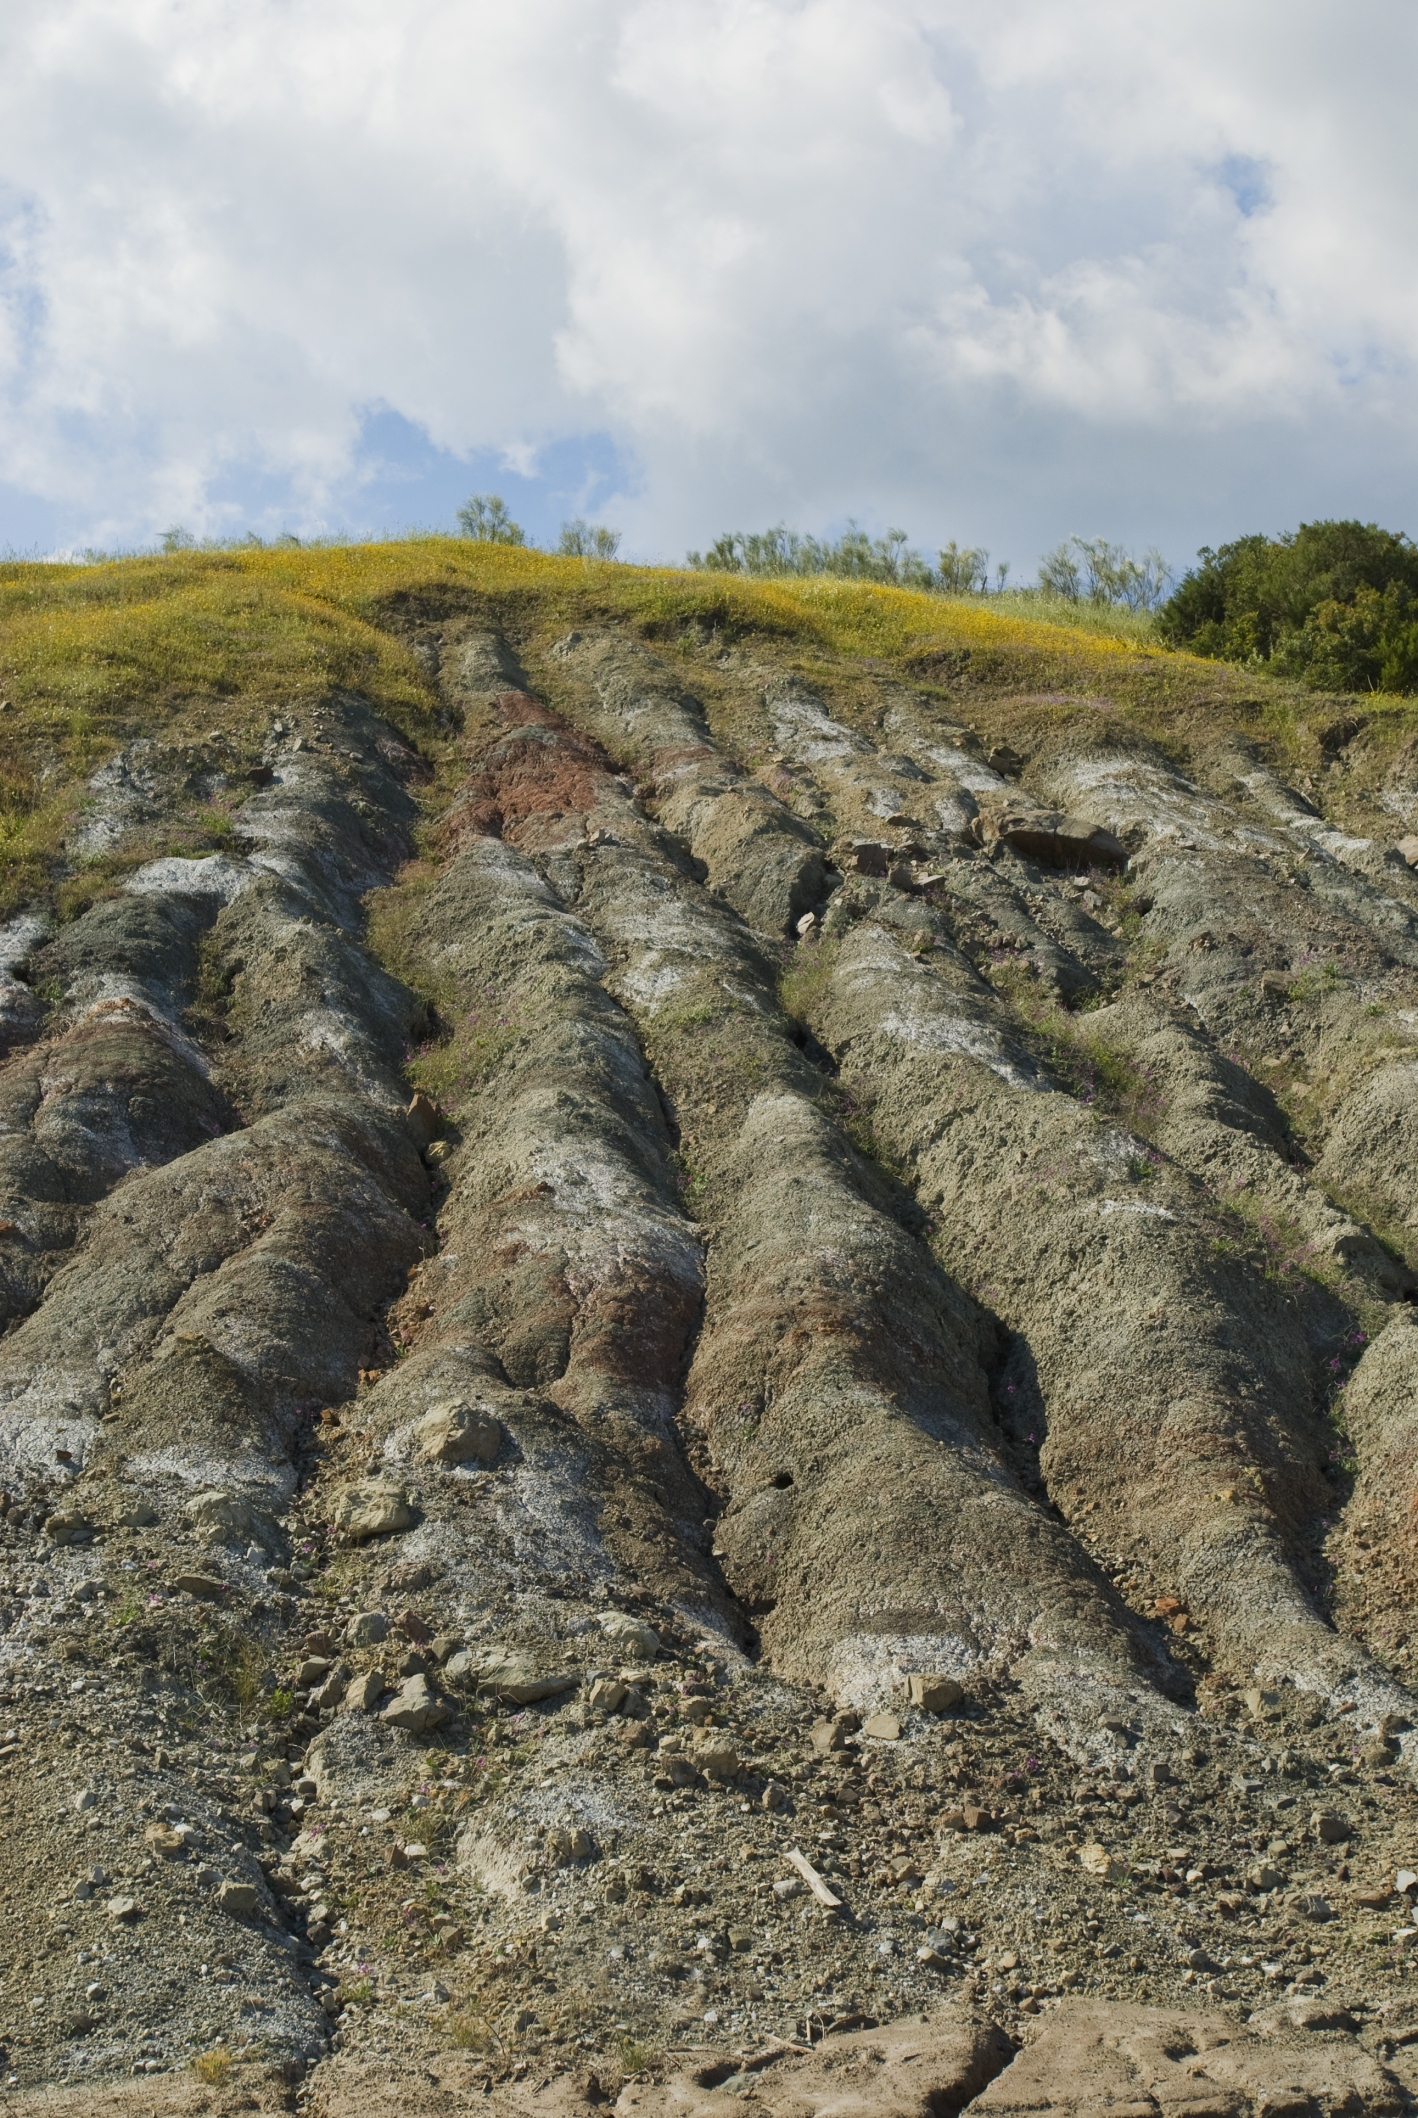 The effects of soil erosion sciencing for Soil erosion causes